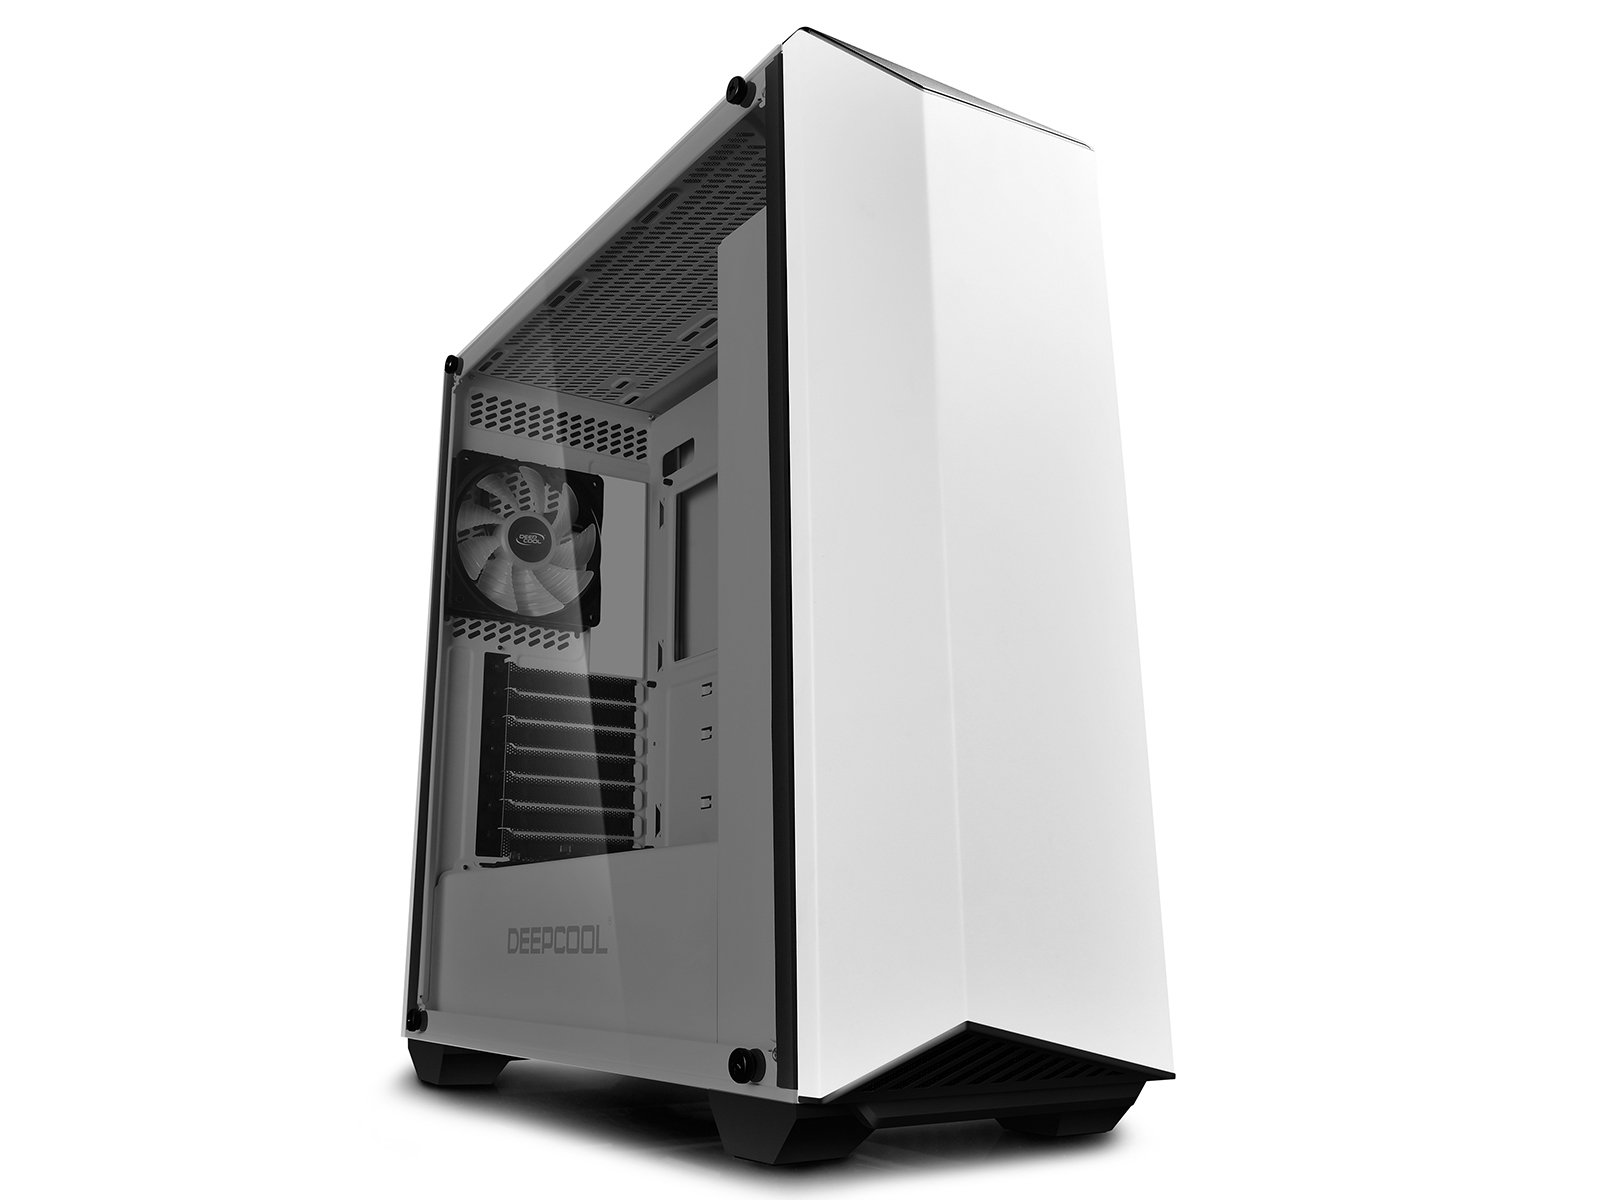 DeepCool EARLKASE RGB WH White Steel/Plastic/Tempered Glass ATX Mid Tower Computer Case